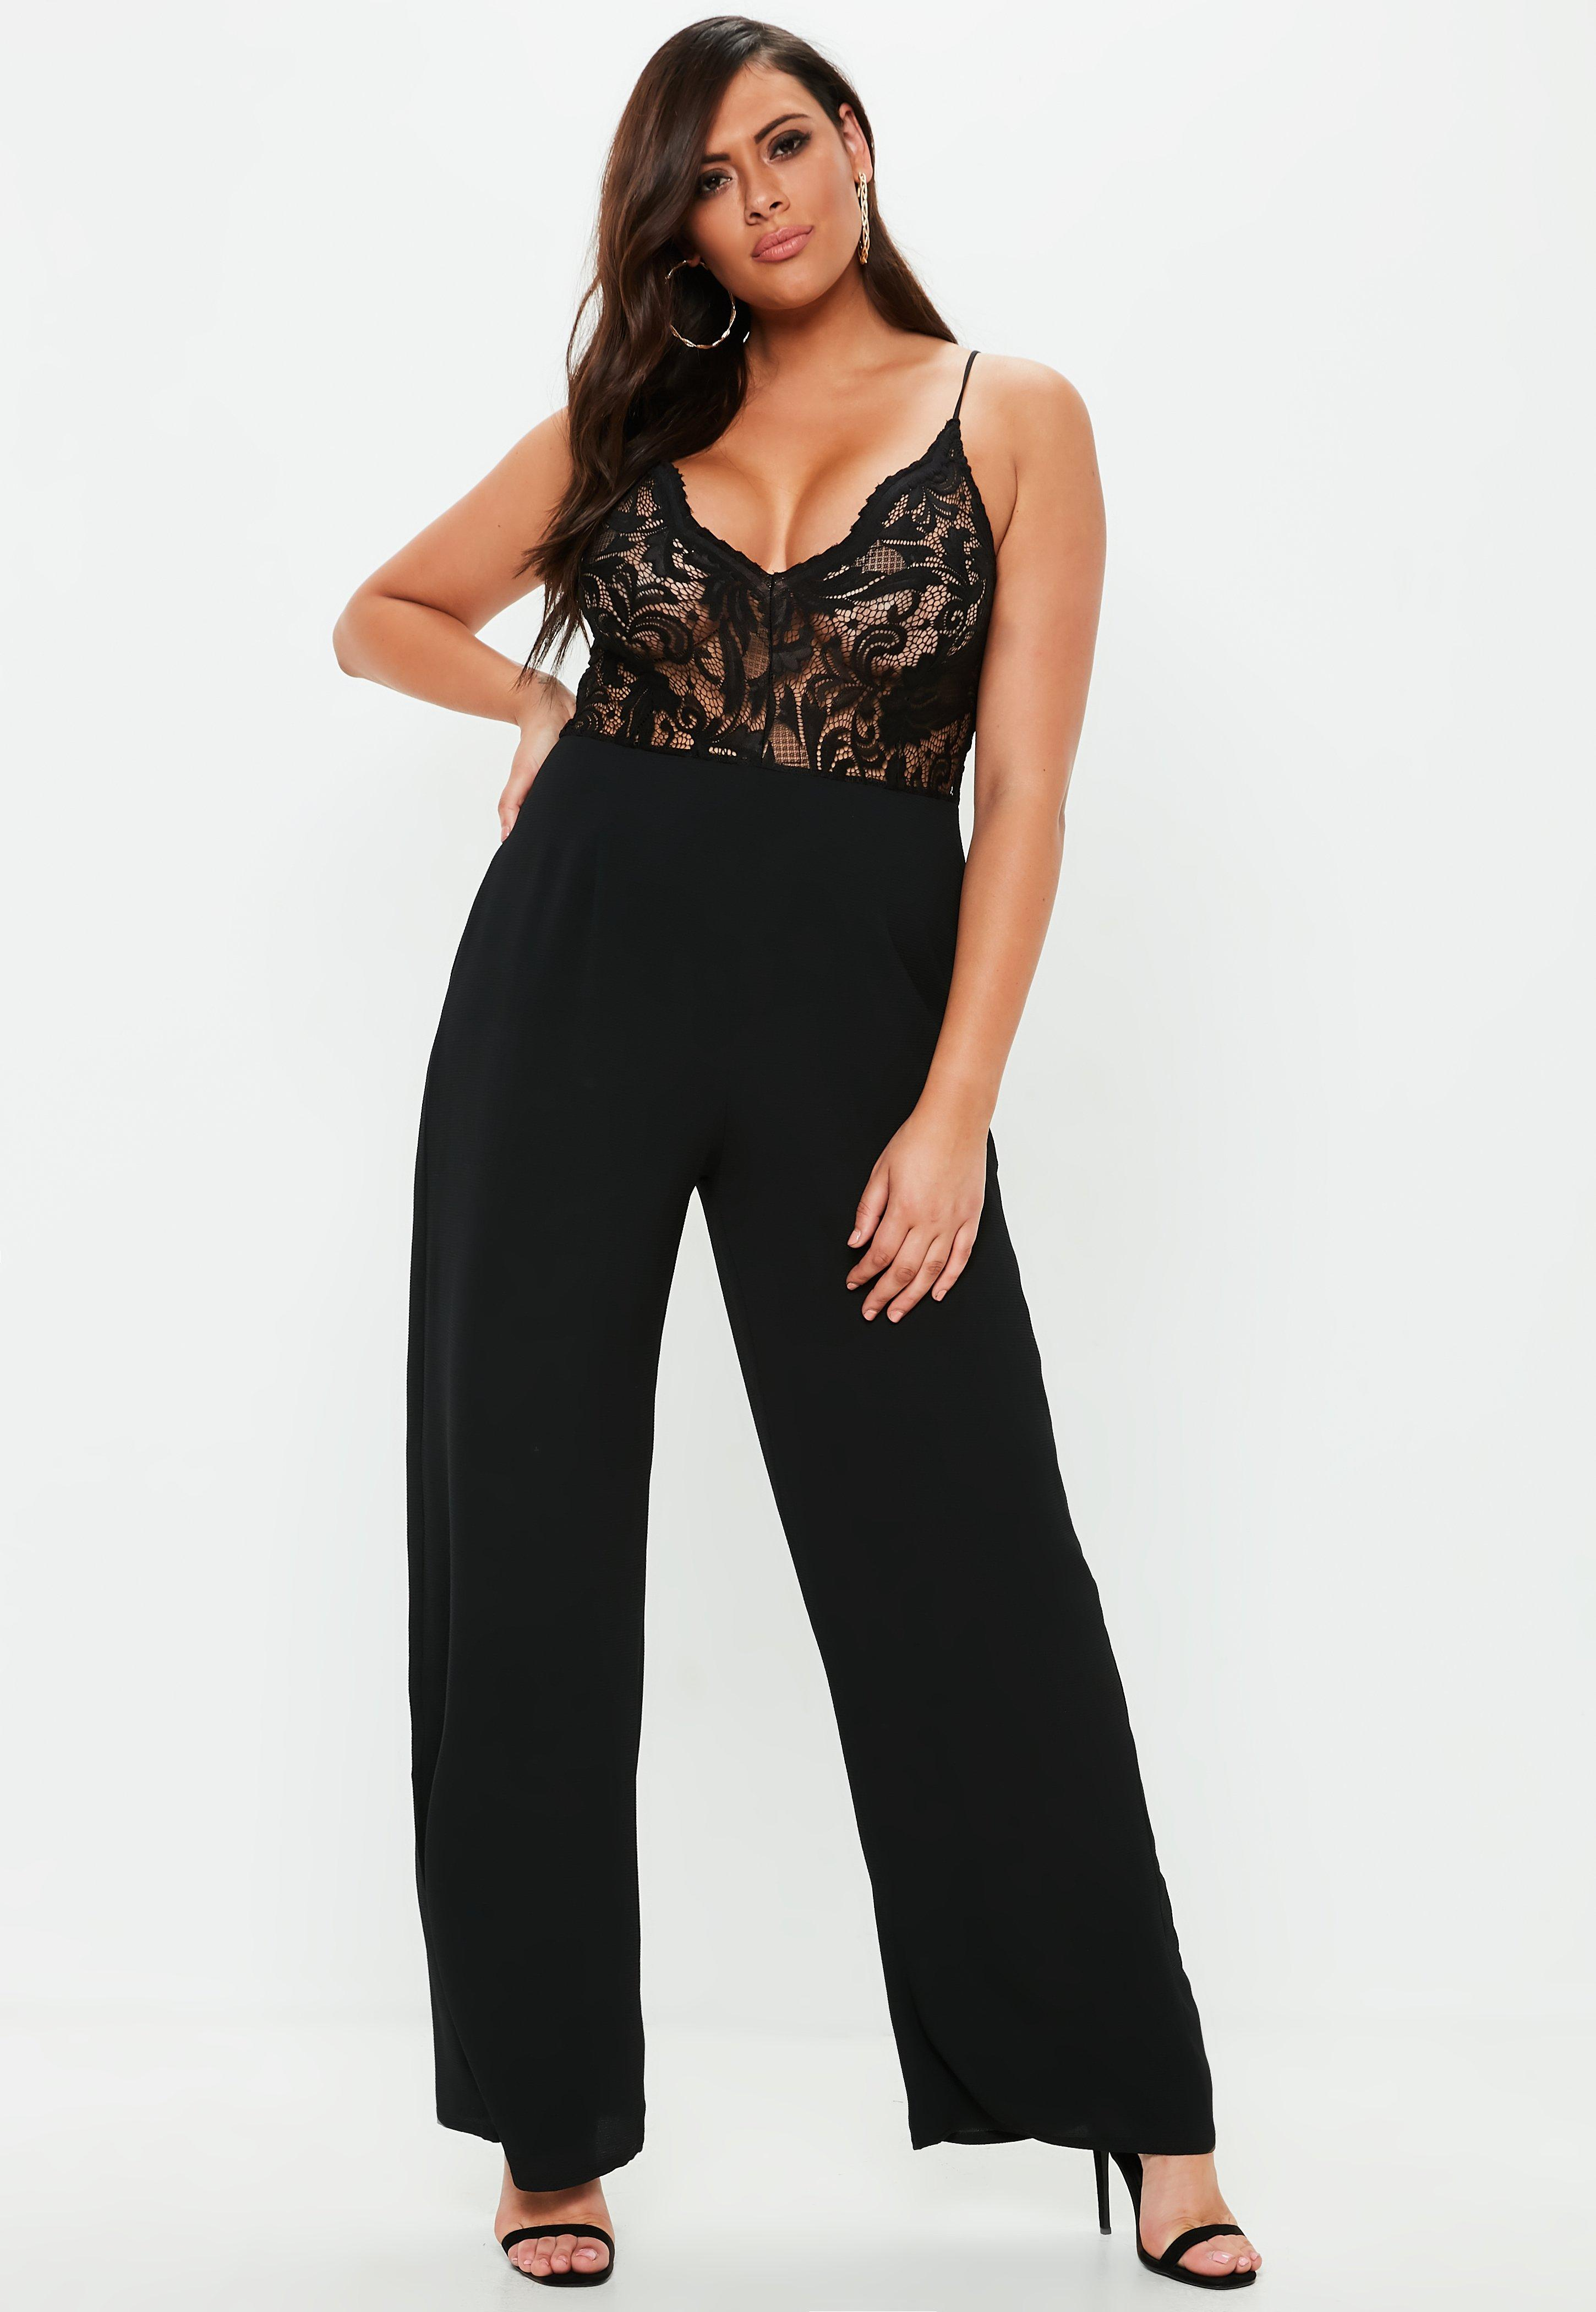 Mode grande taille   Vêtement femme grande taille - Missguided 68a9c24baa2